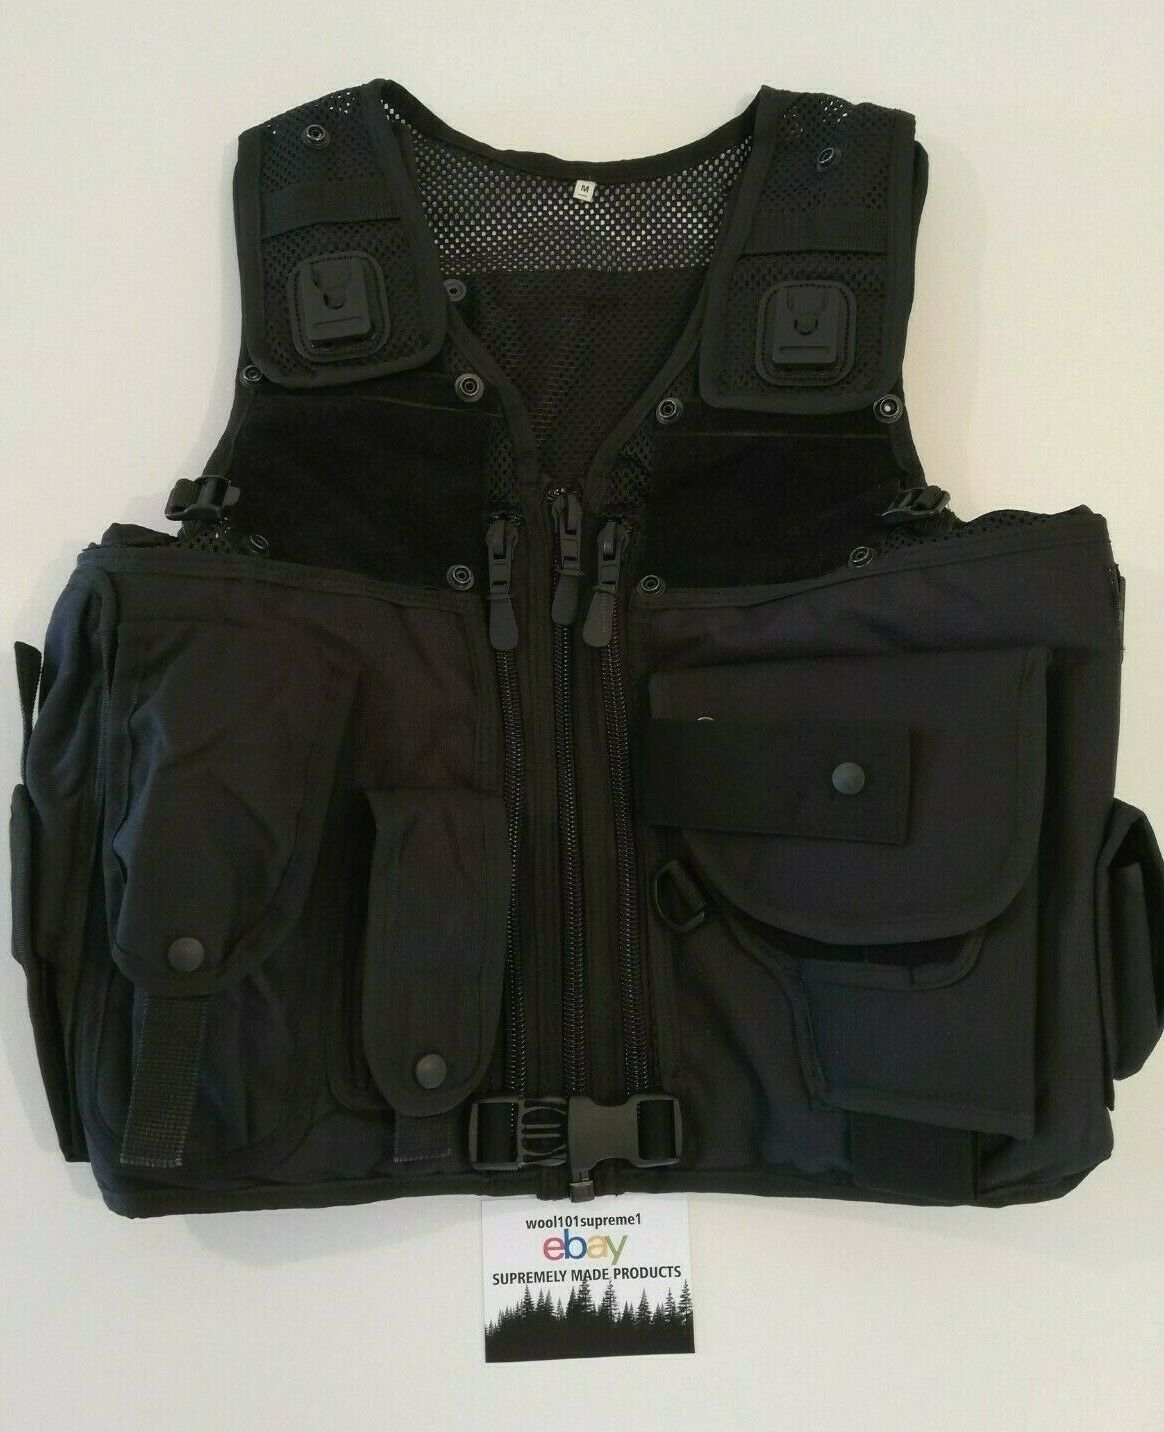 ARKTIS Police force professional tactical vest -size M-Supremely  made for police  save 60% discount